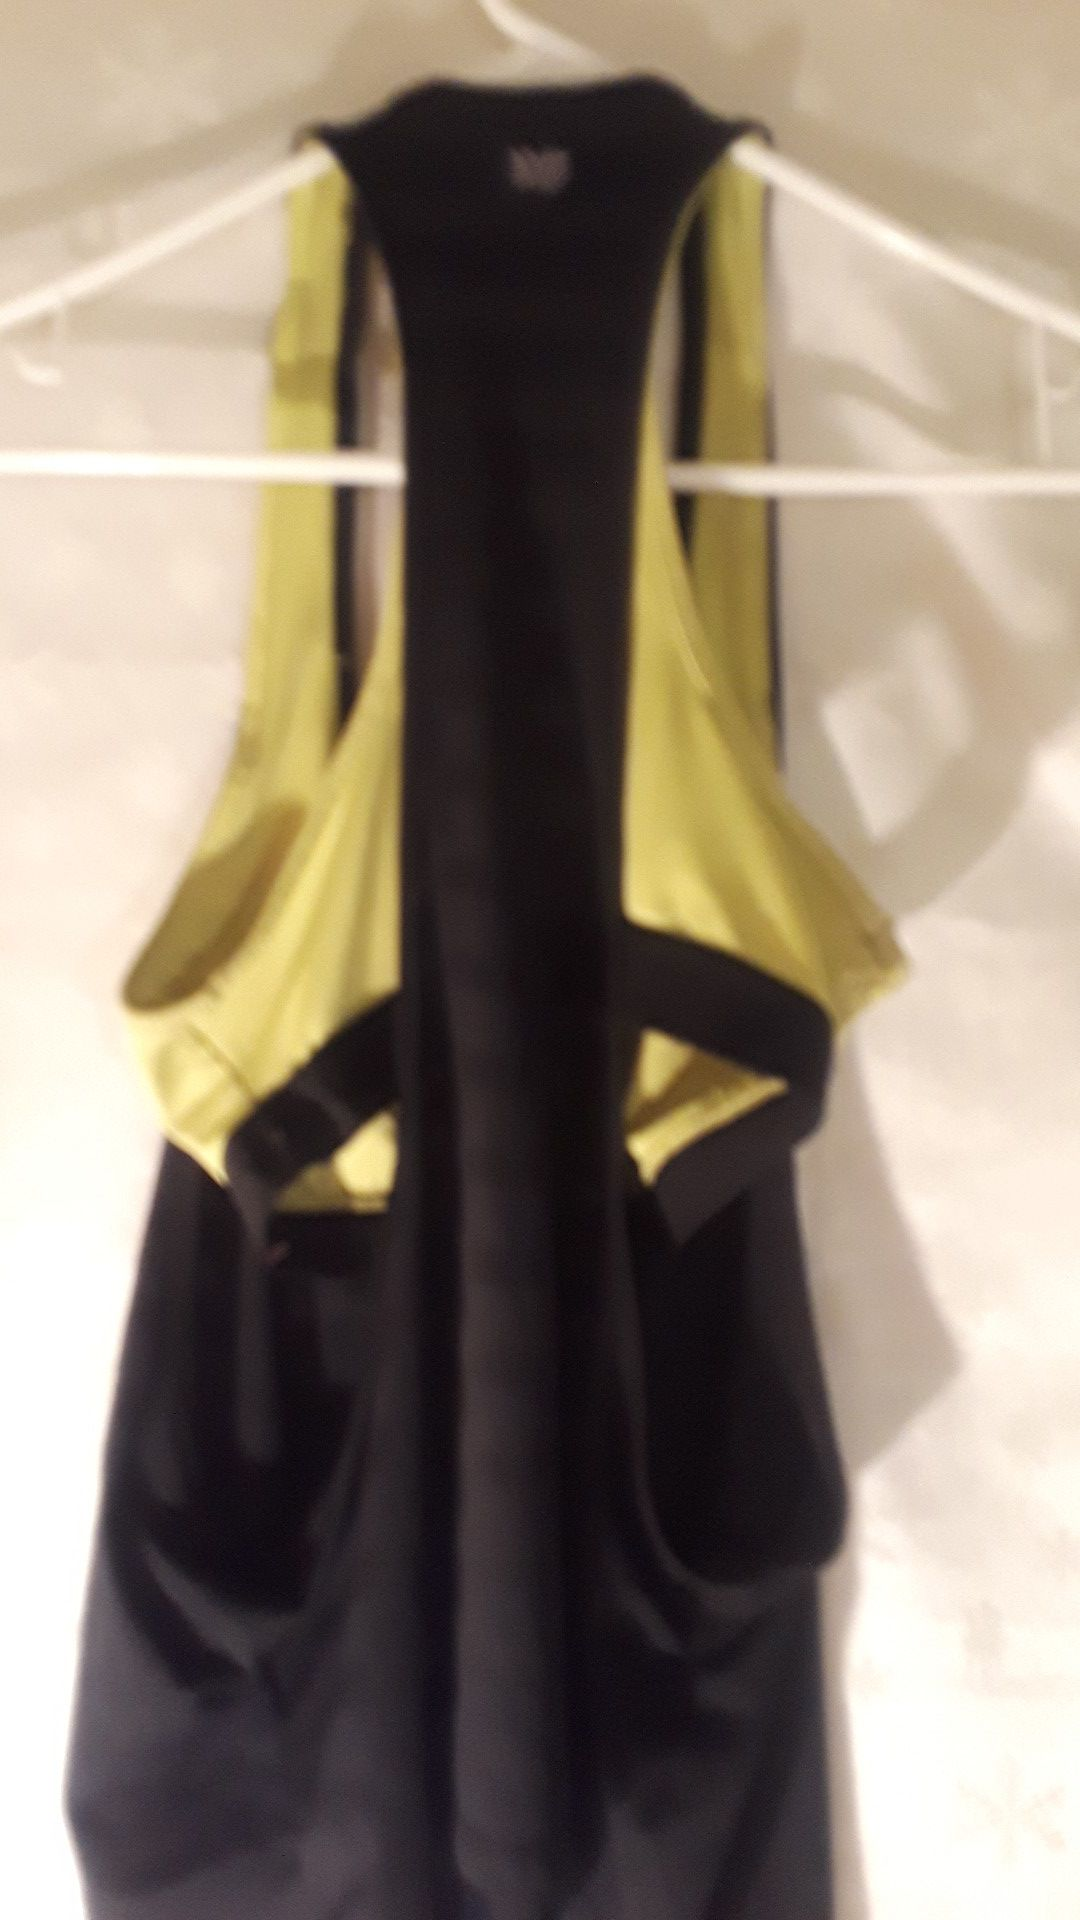 Workout top small $1